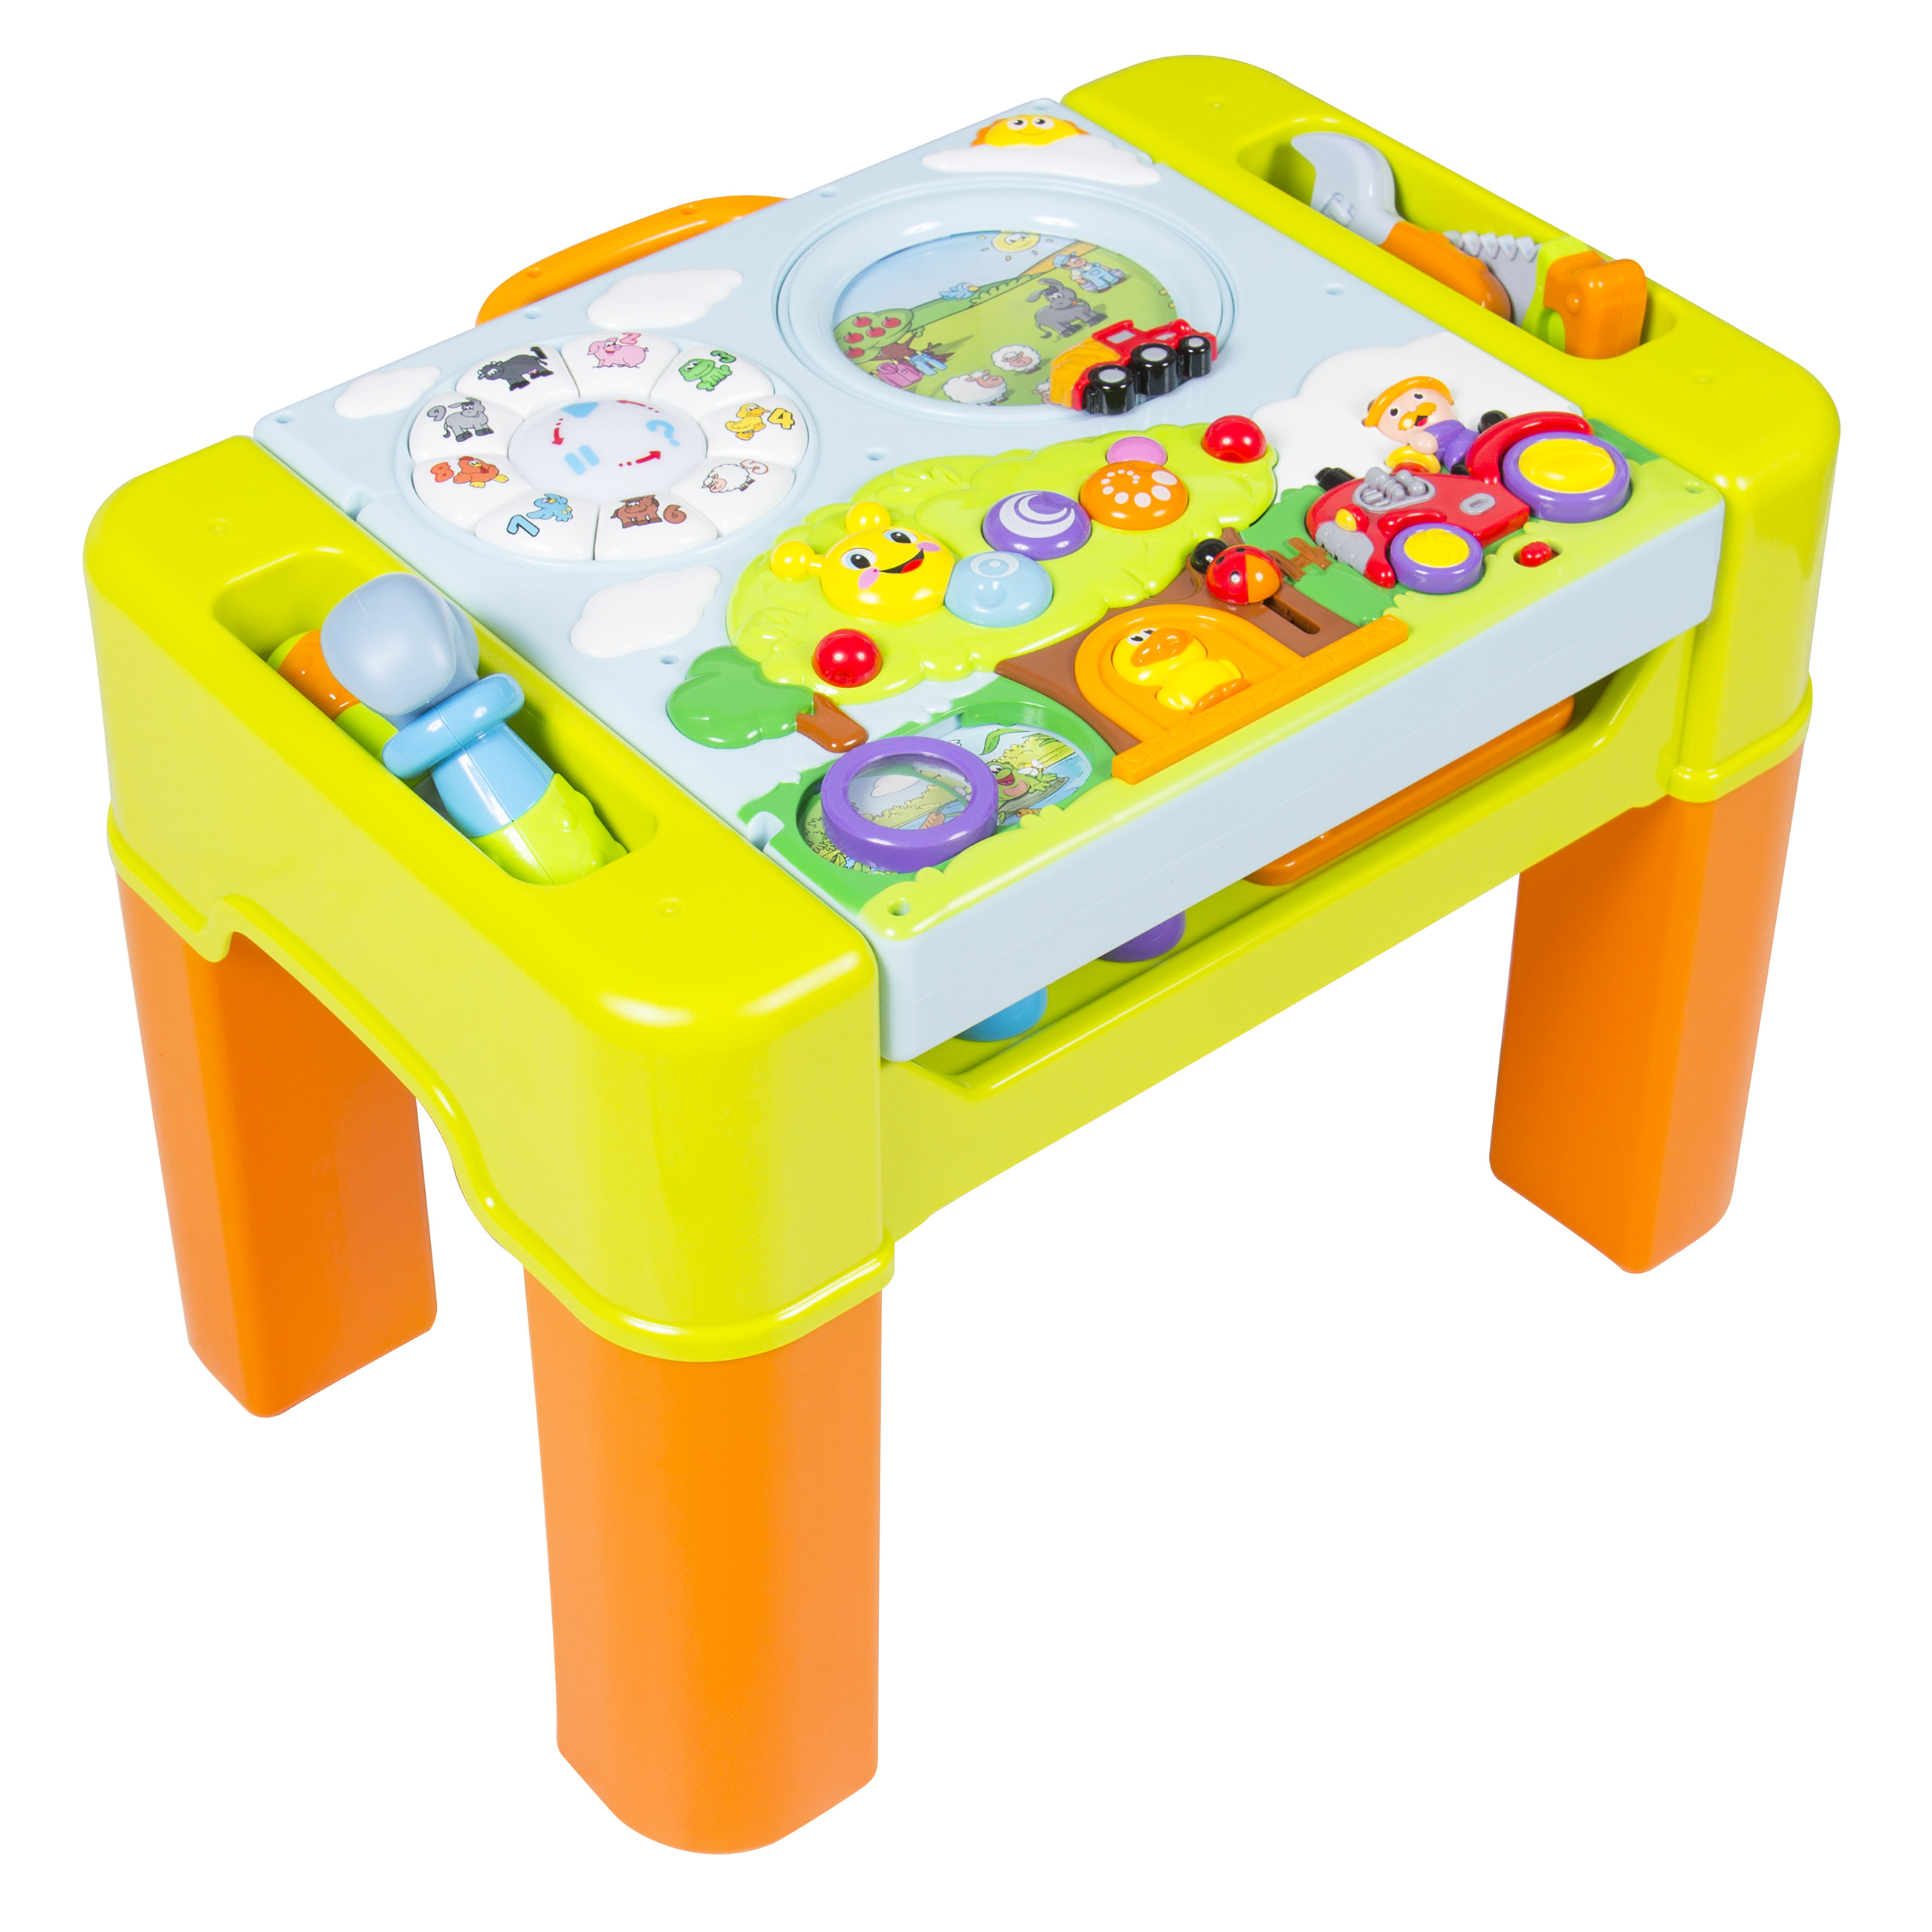 kids learning activity table with quiz music lights shapes  - kids learning activity table with quiz music lights shapes tools andmore  walmartcom